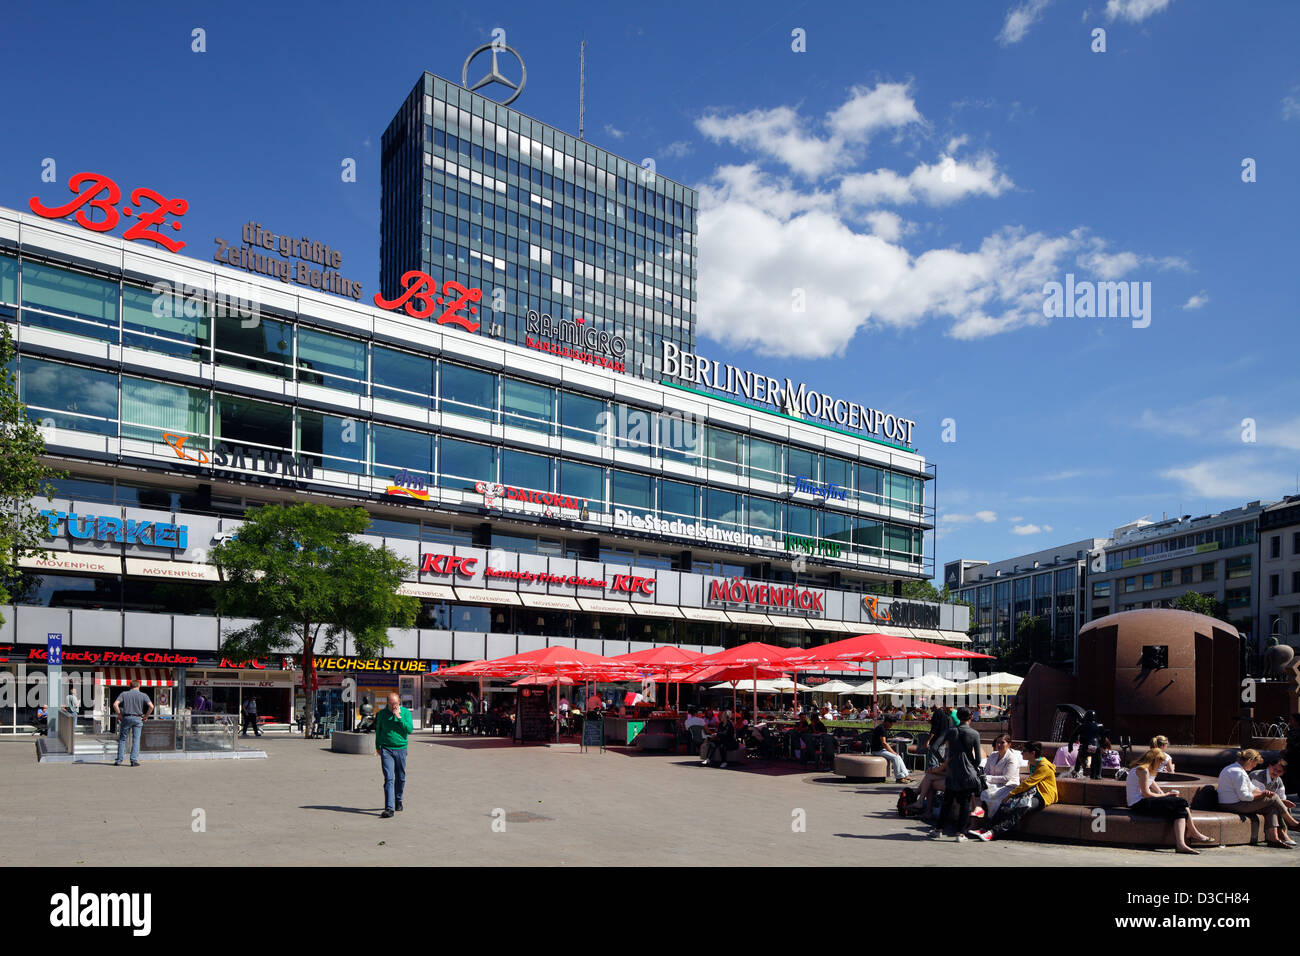 berlin germany the europa center on breitscheidplatz stock photo 53752052 alamy. Black Bedroom Furniture Sets. Home Design Ideas